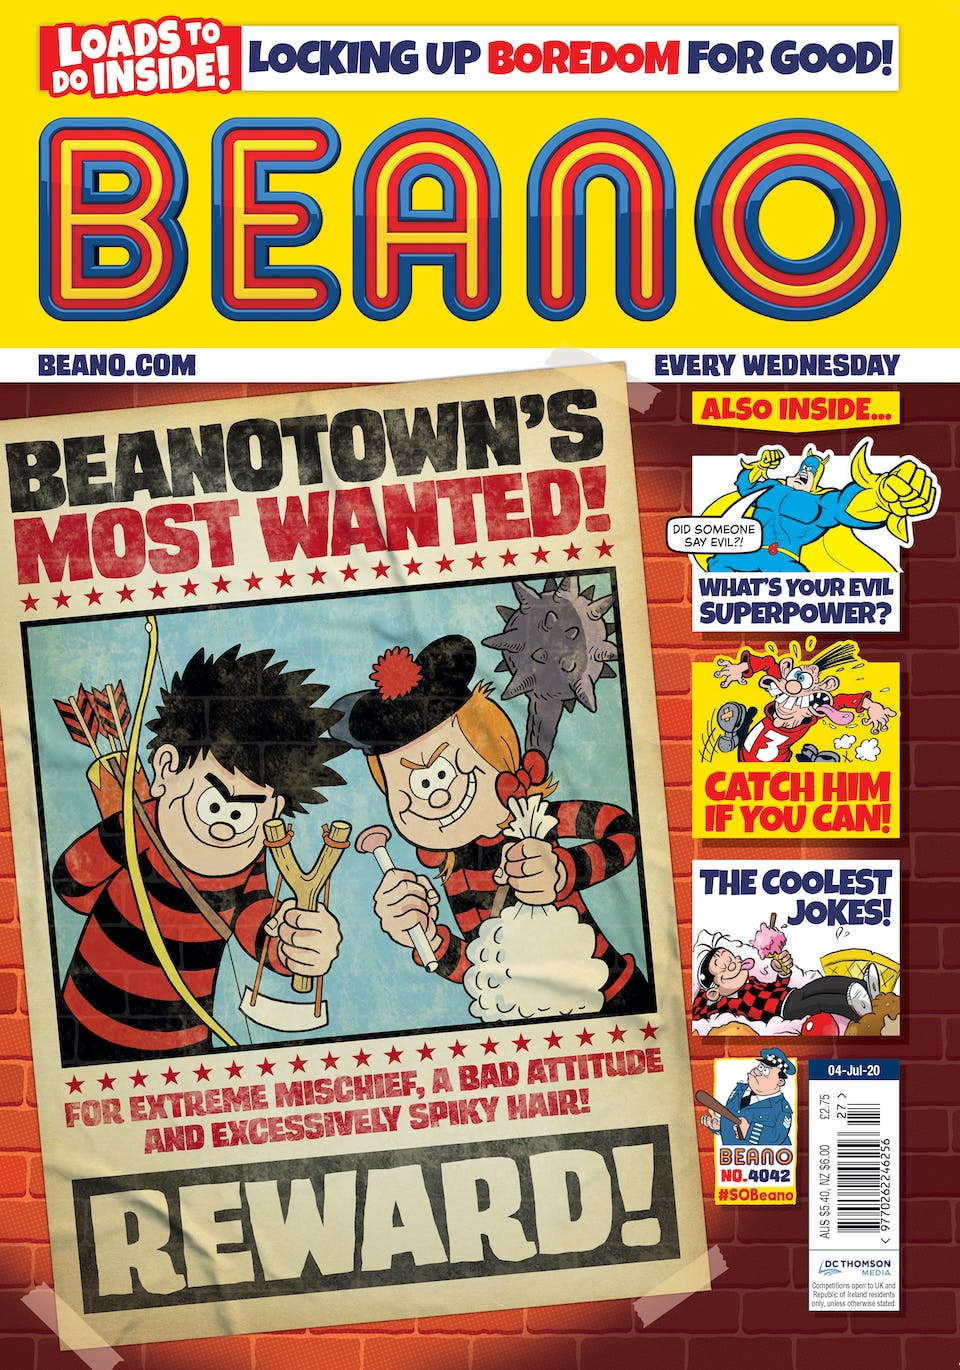 Inside Beano Issue 4042 - Minnie is always one of Beanotown's Most Wanted – or is she?